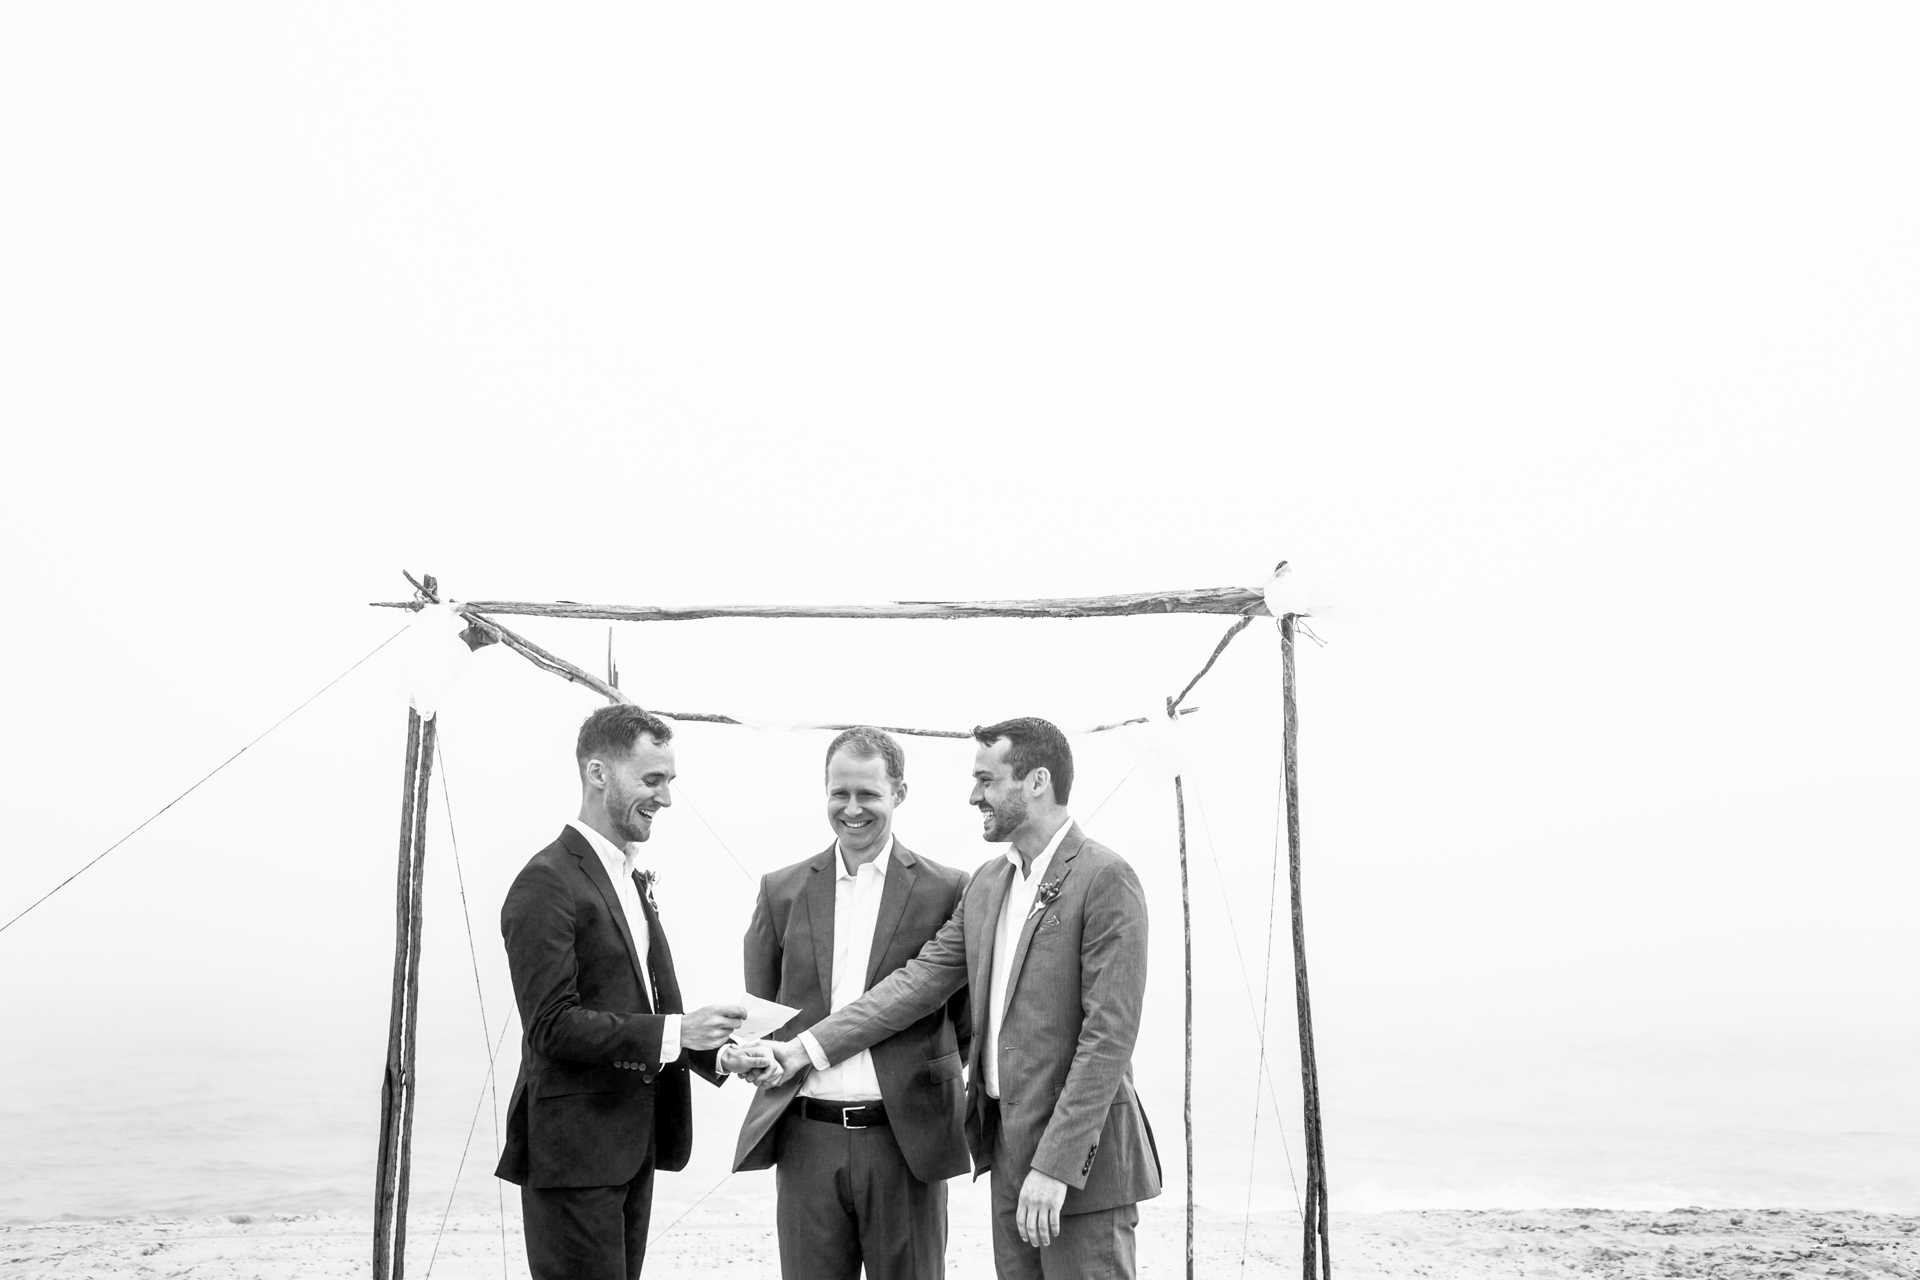 Nantucket Island, MA Elopement Ceremony Image - Emotional moment during the ceremony.